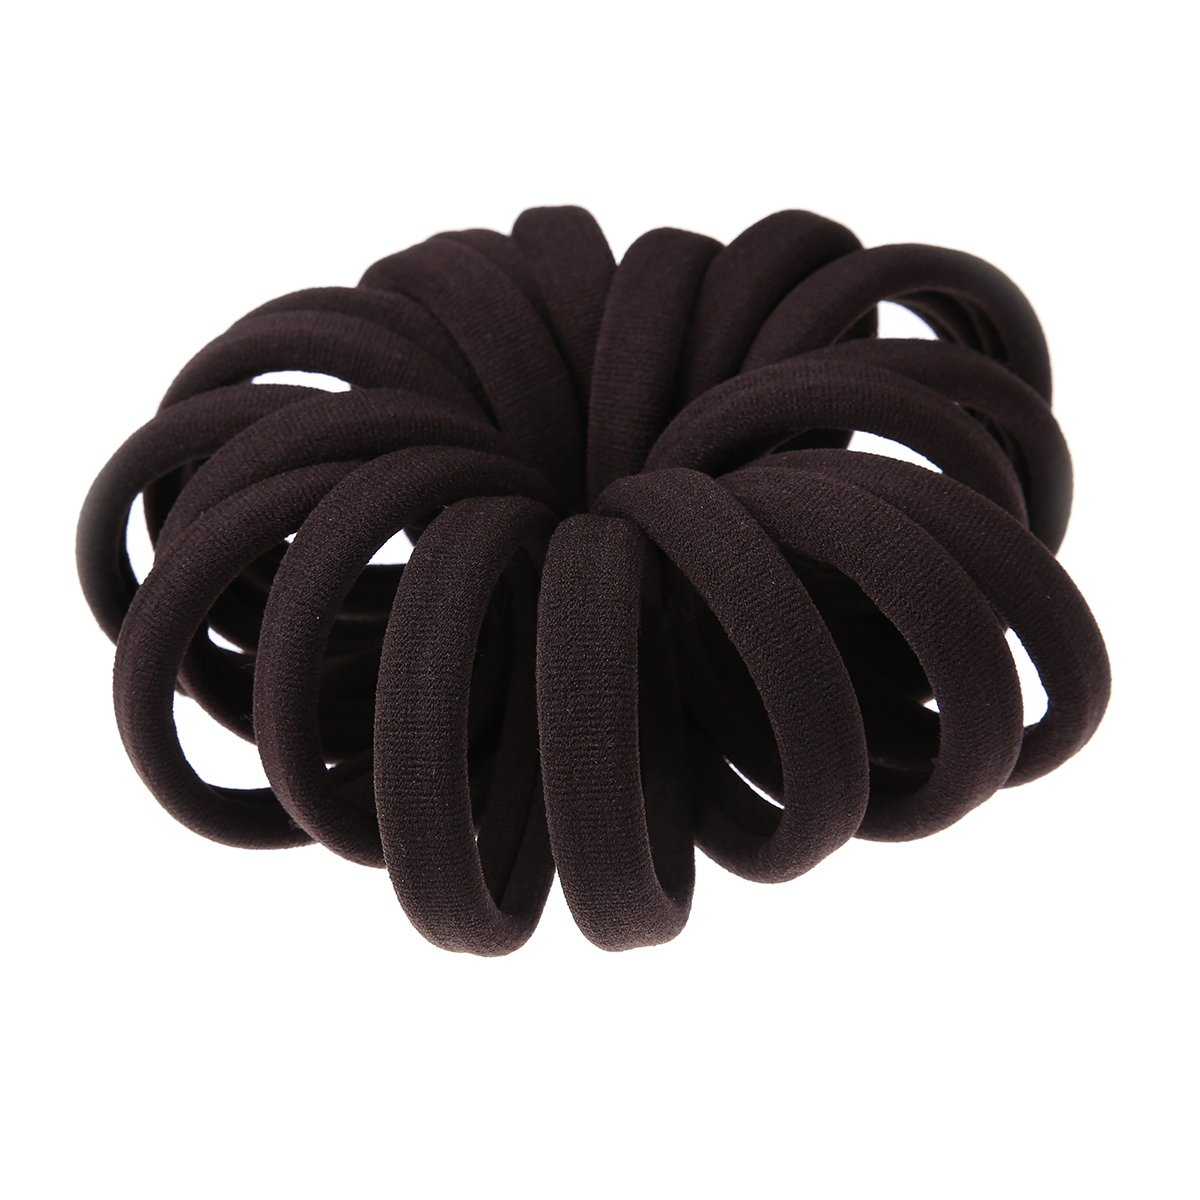 Amazon.com   Miuance Elastic Hair Ties Hair Ties Bands Rope No Crease Elastic  Fabric Large Cotton Stretch Ouchless Ponytail Holders (20 pcs Thick Brown)    ... c5c98f8cfed